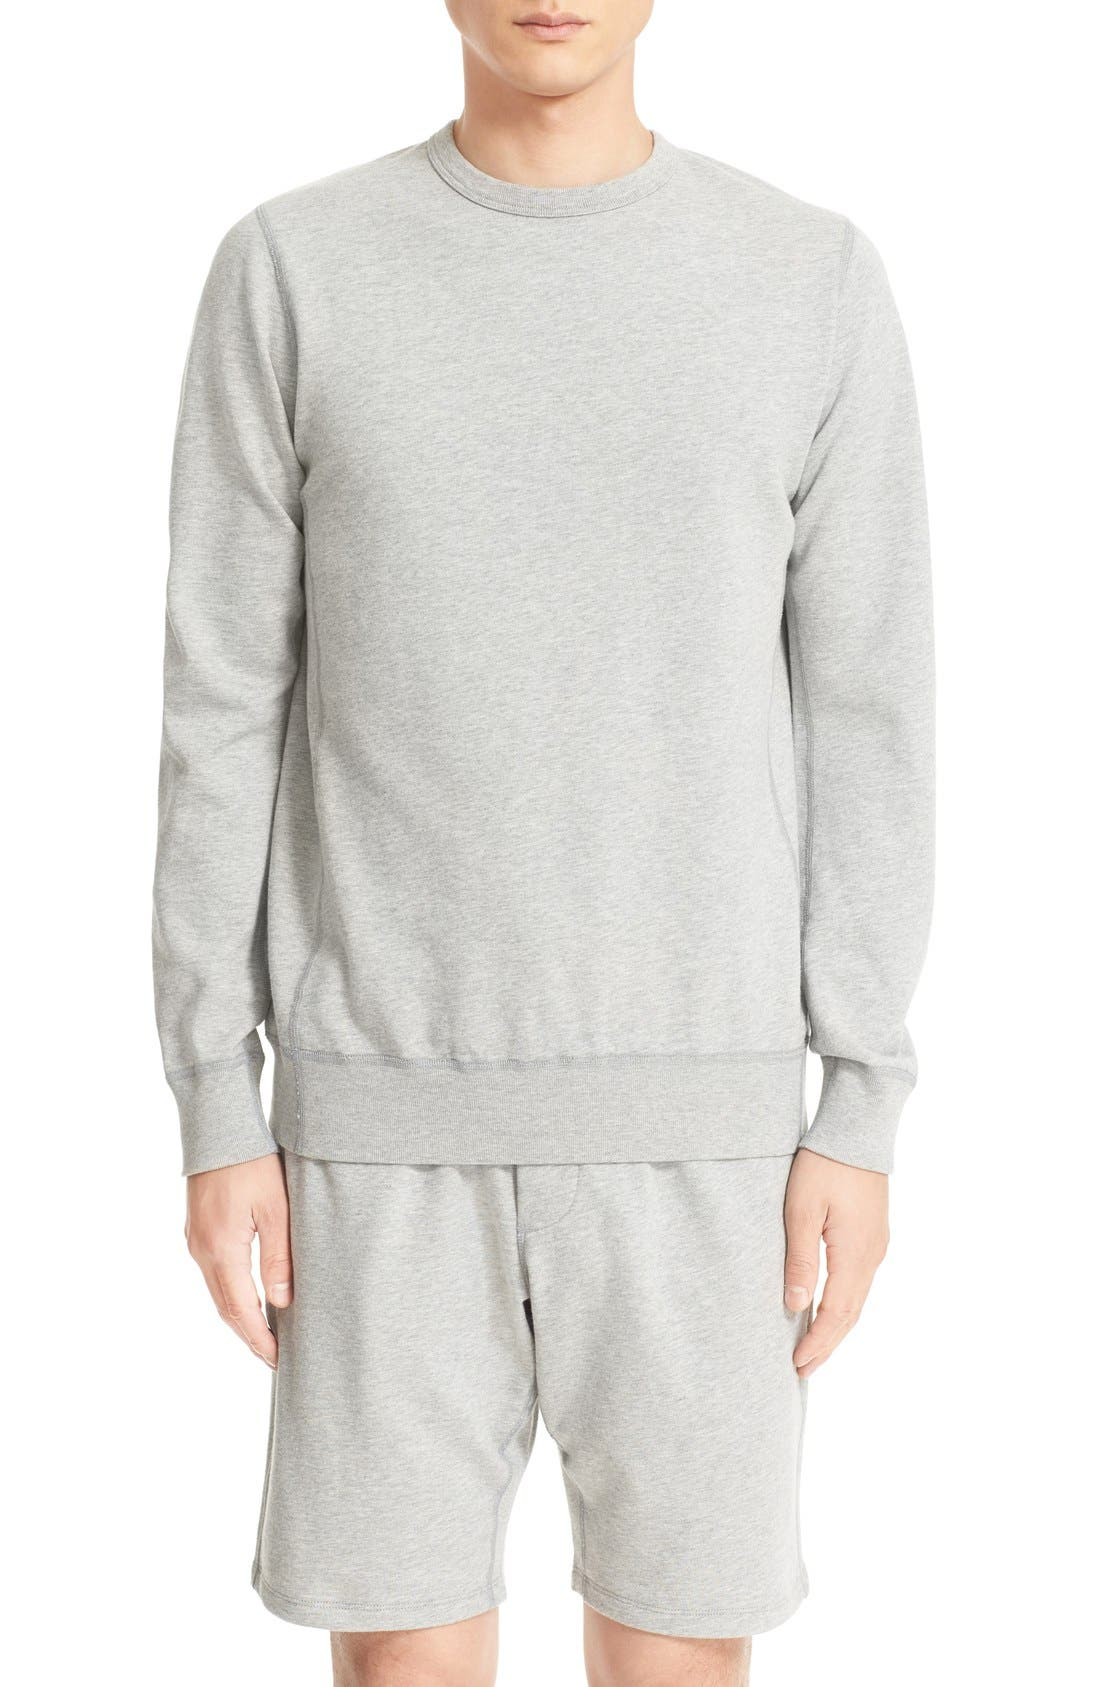 French Terry Sweatshirt,                             Main thumbnail 1, color,                             Heather Grey